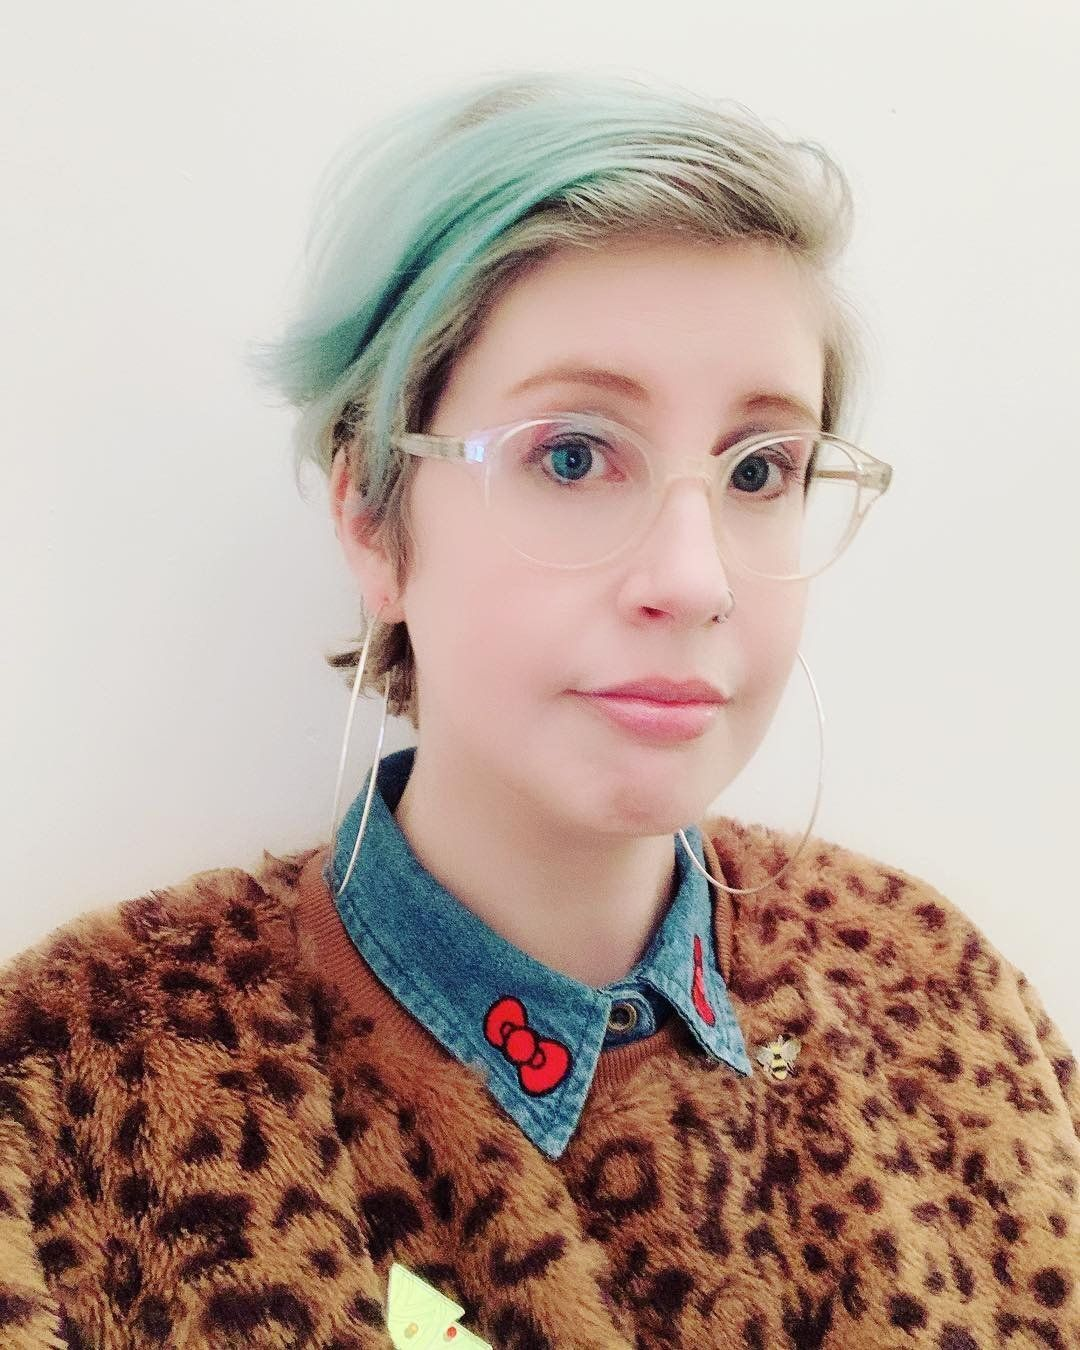 Identifying As Non-Binary Isn't About Being 'Special' – It's Just One Part Of Who I